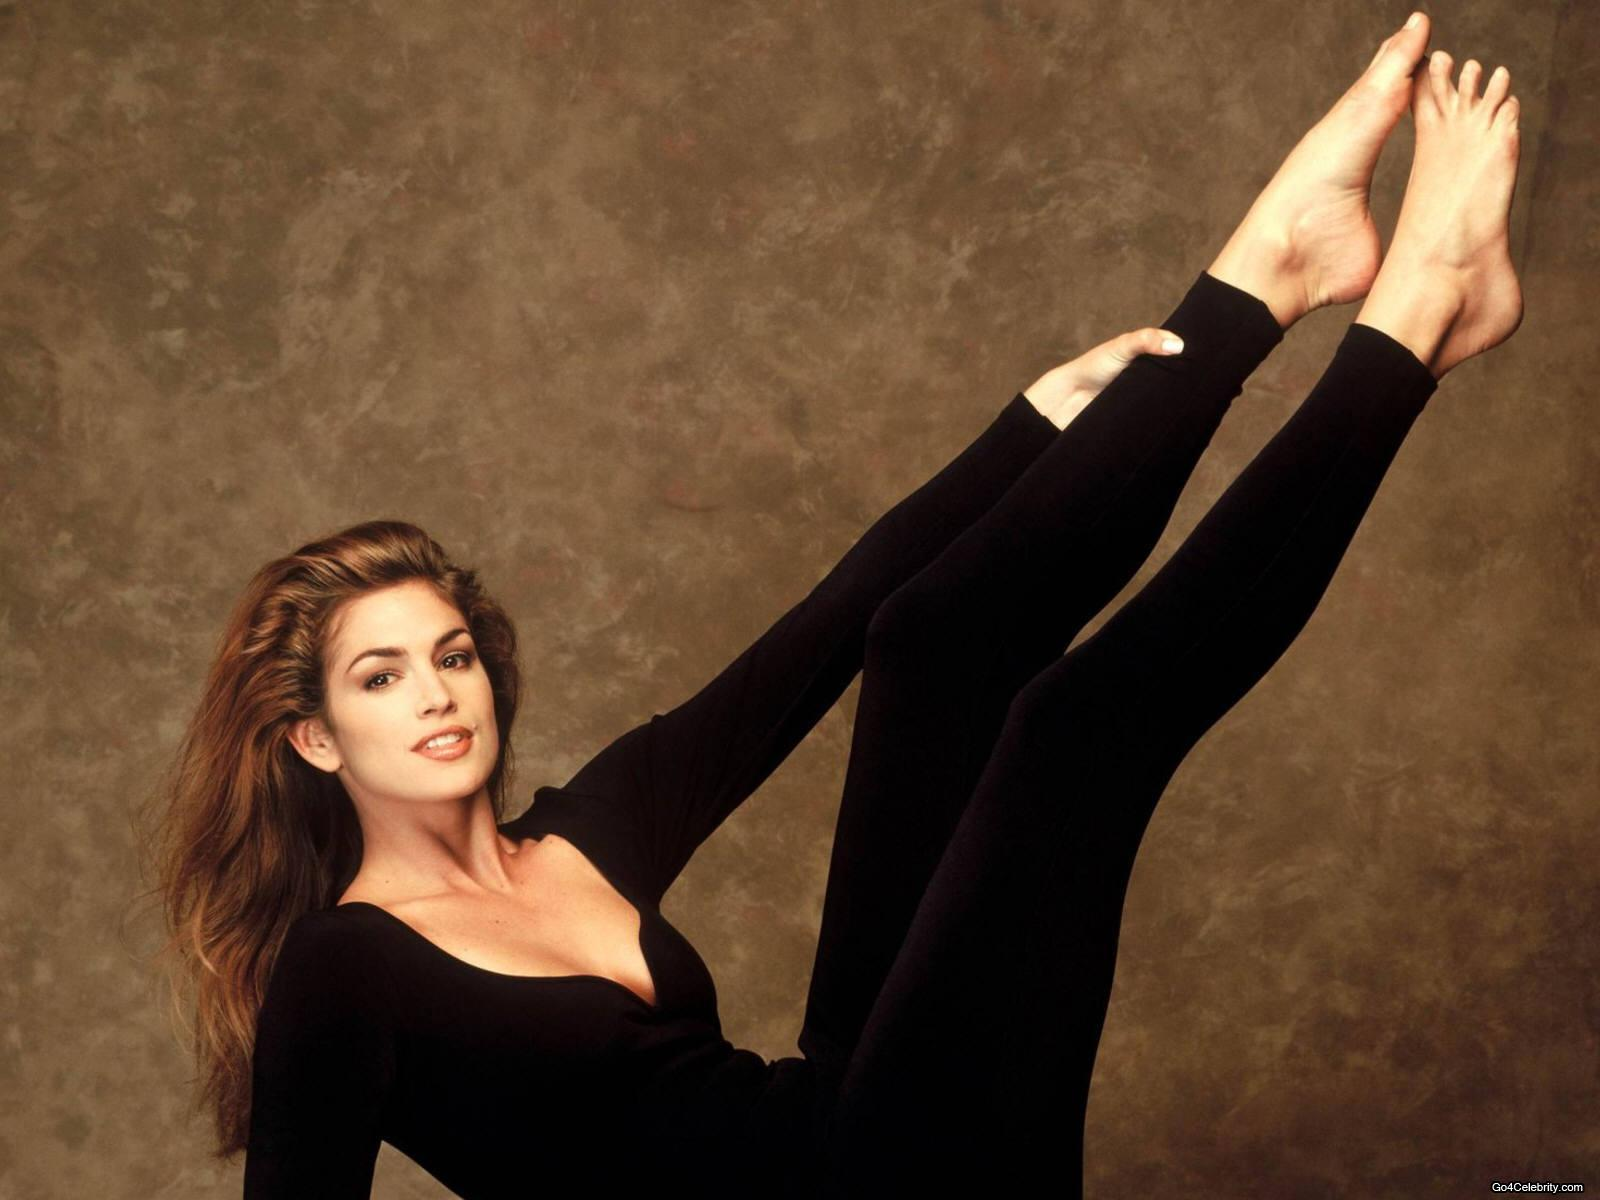 1600x1200 - Cindy Crawford Wallpapers 26